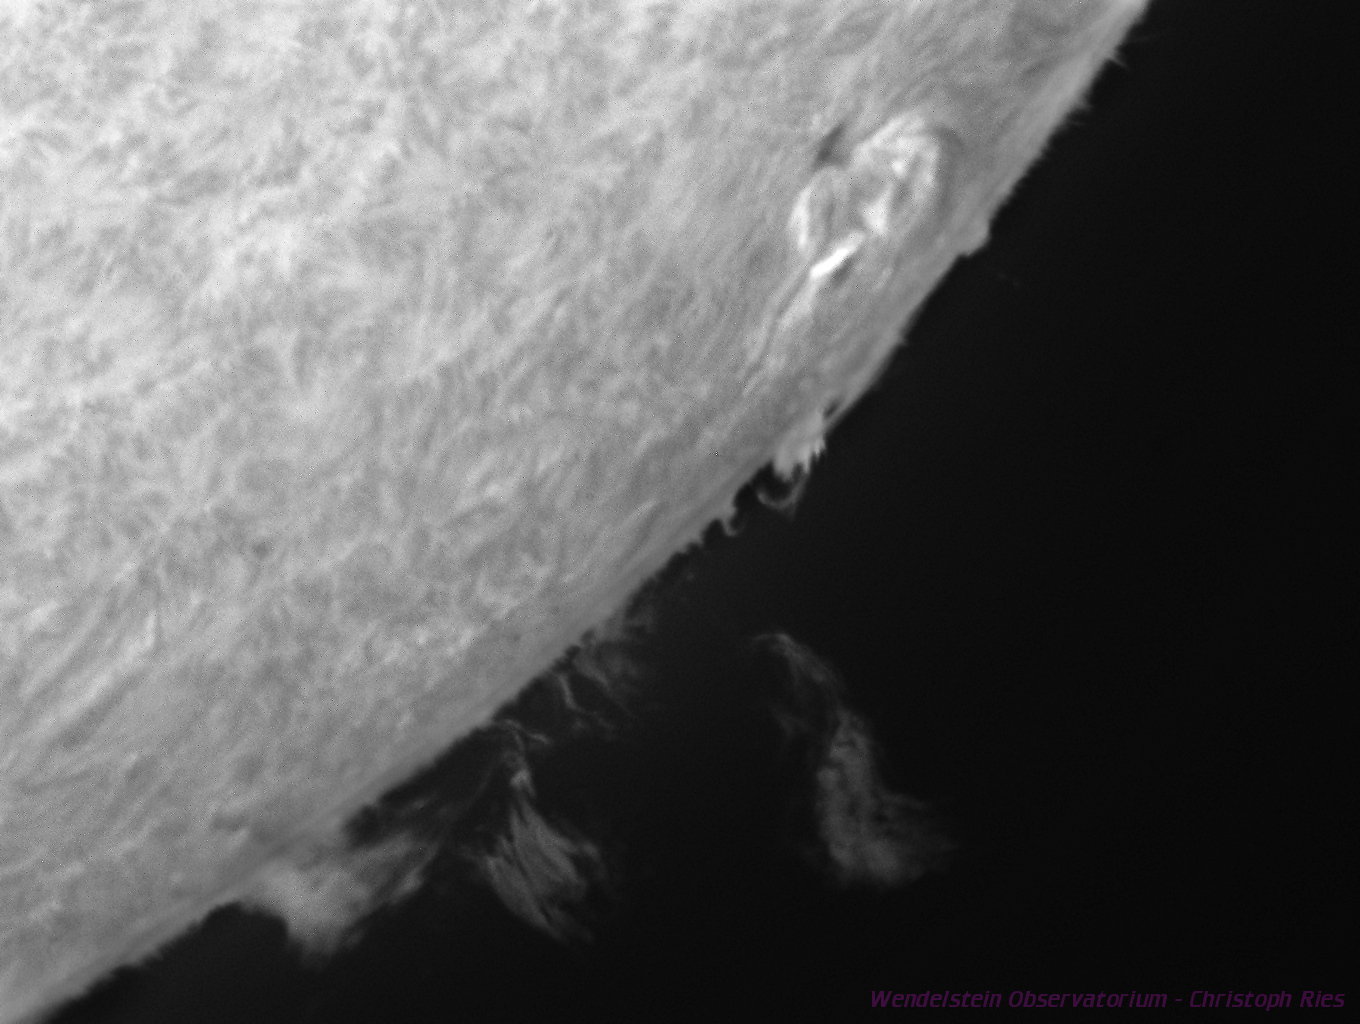 Prominences and spot at the solar limb